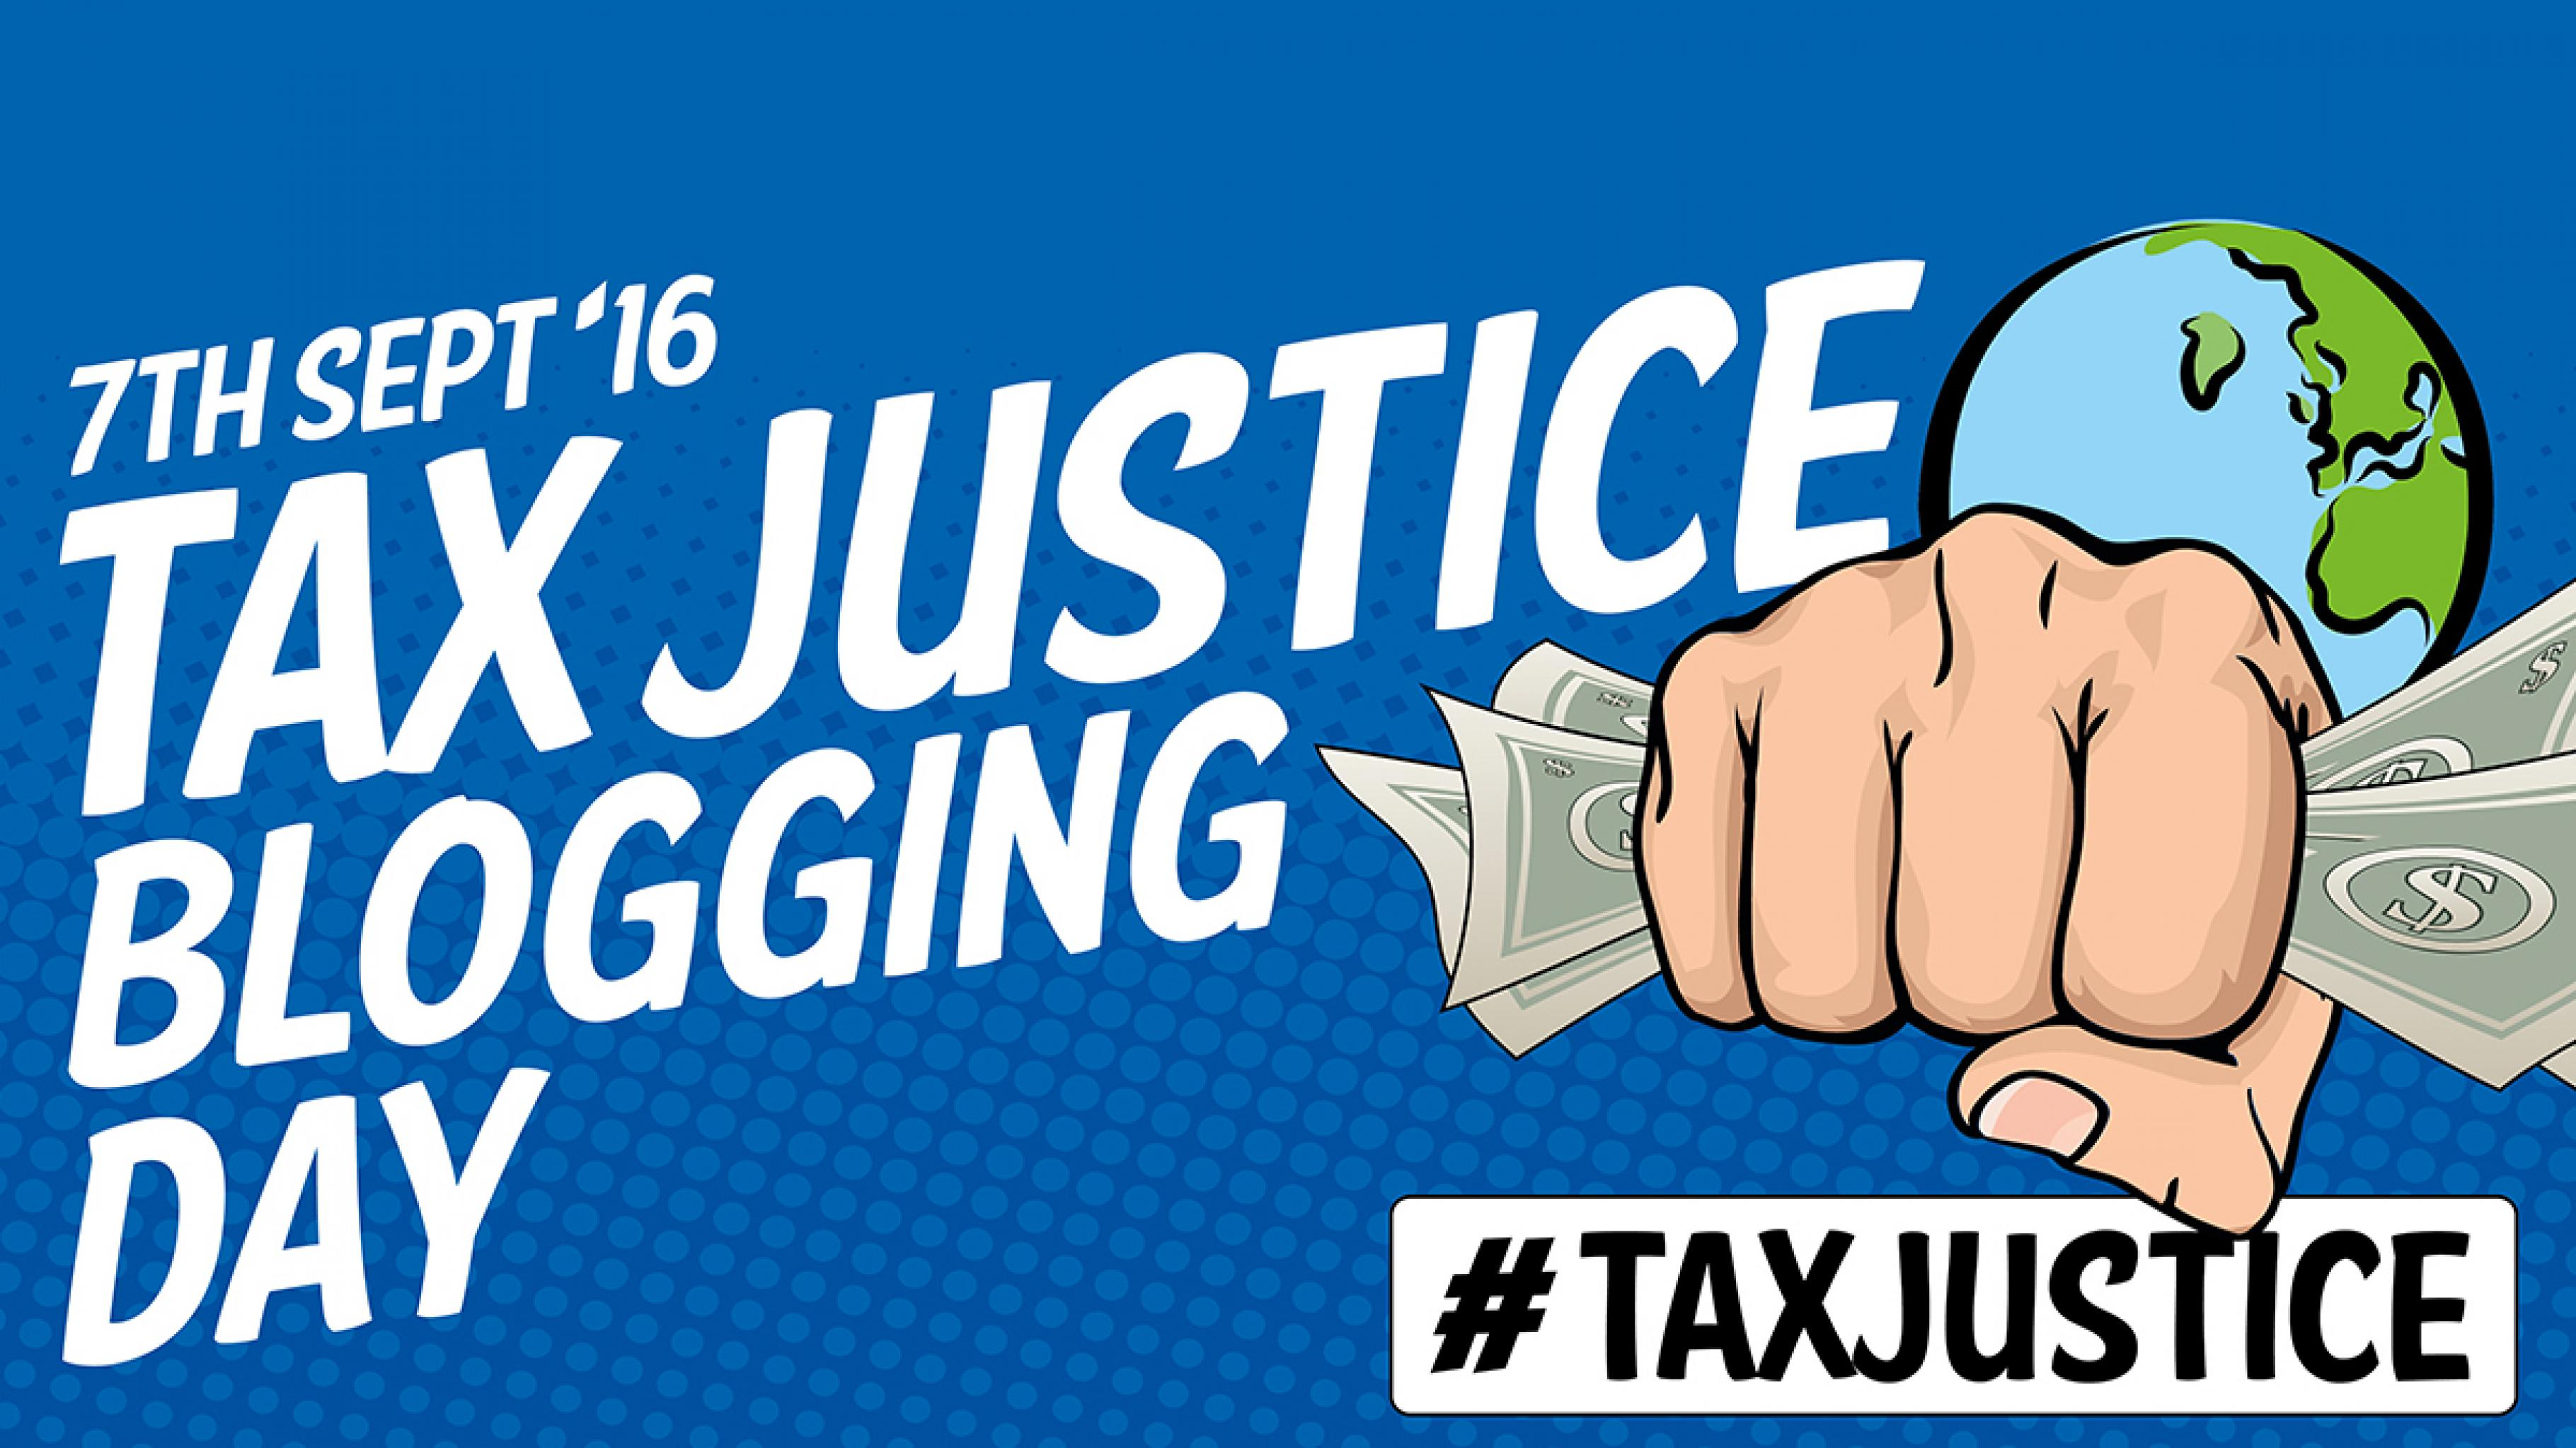 Tax Justice Blogging Day